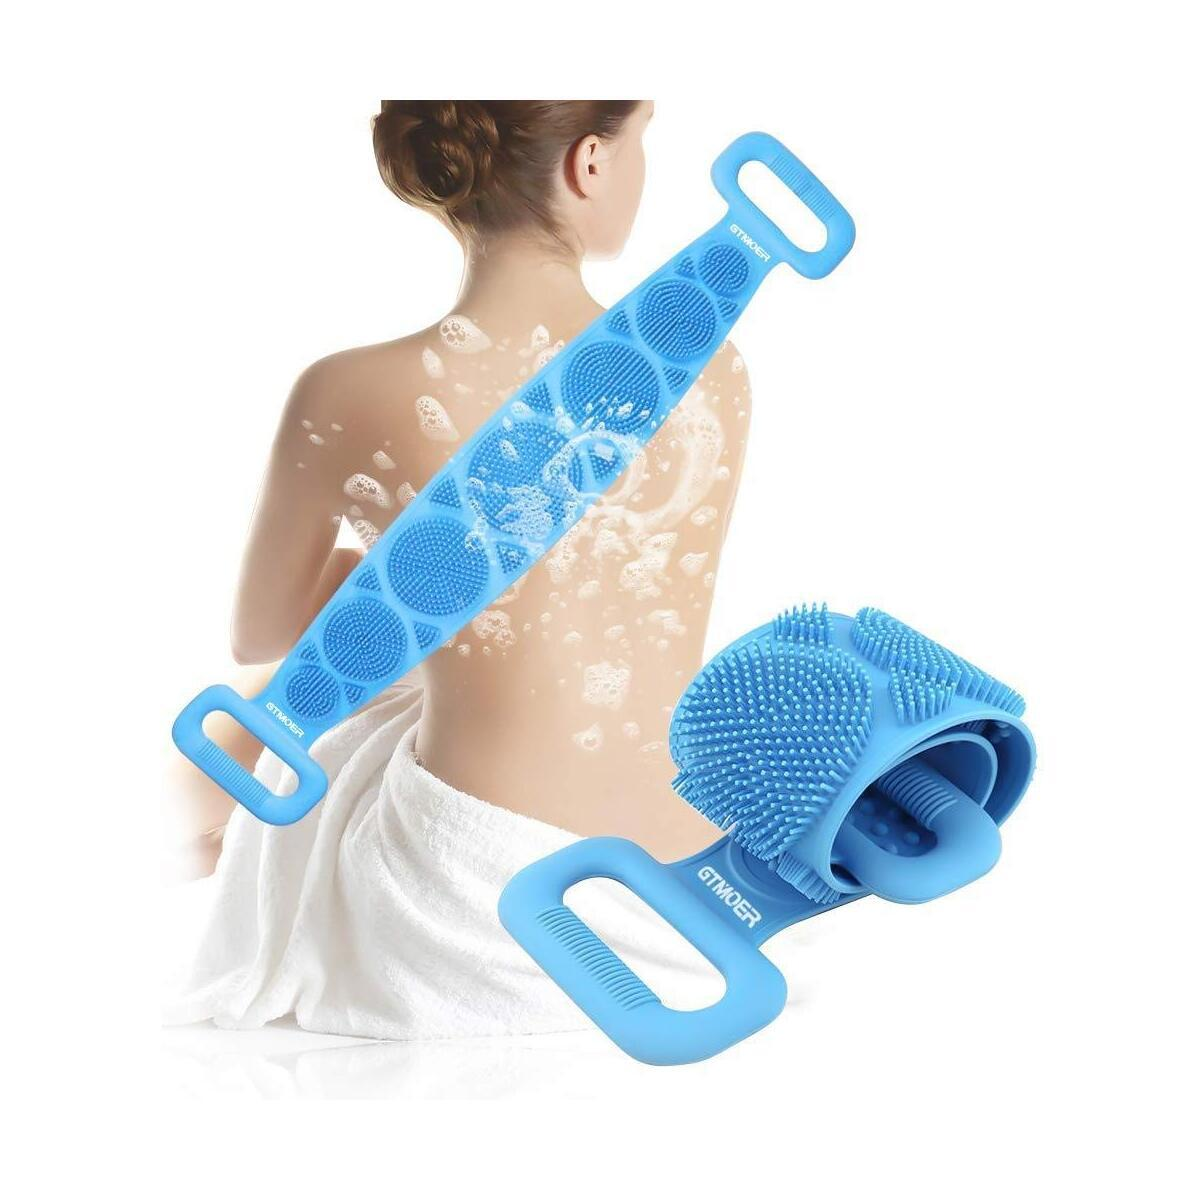 Silicone Body Scrubber Bath Shower Towel,Back Cleaning Shower Strap,Silicone Body Brush, Body Wash Silicone Scrubber Belt for Men Women, Easy to CleanSilicone Body shower Scrub